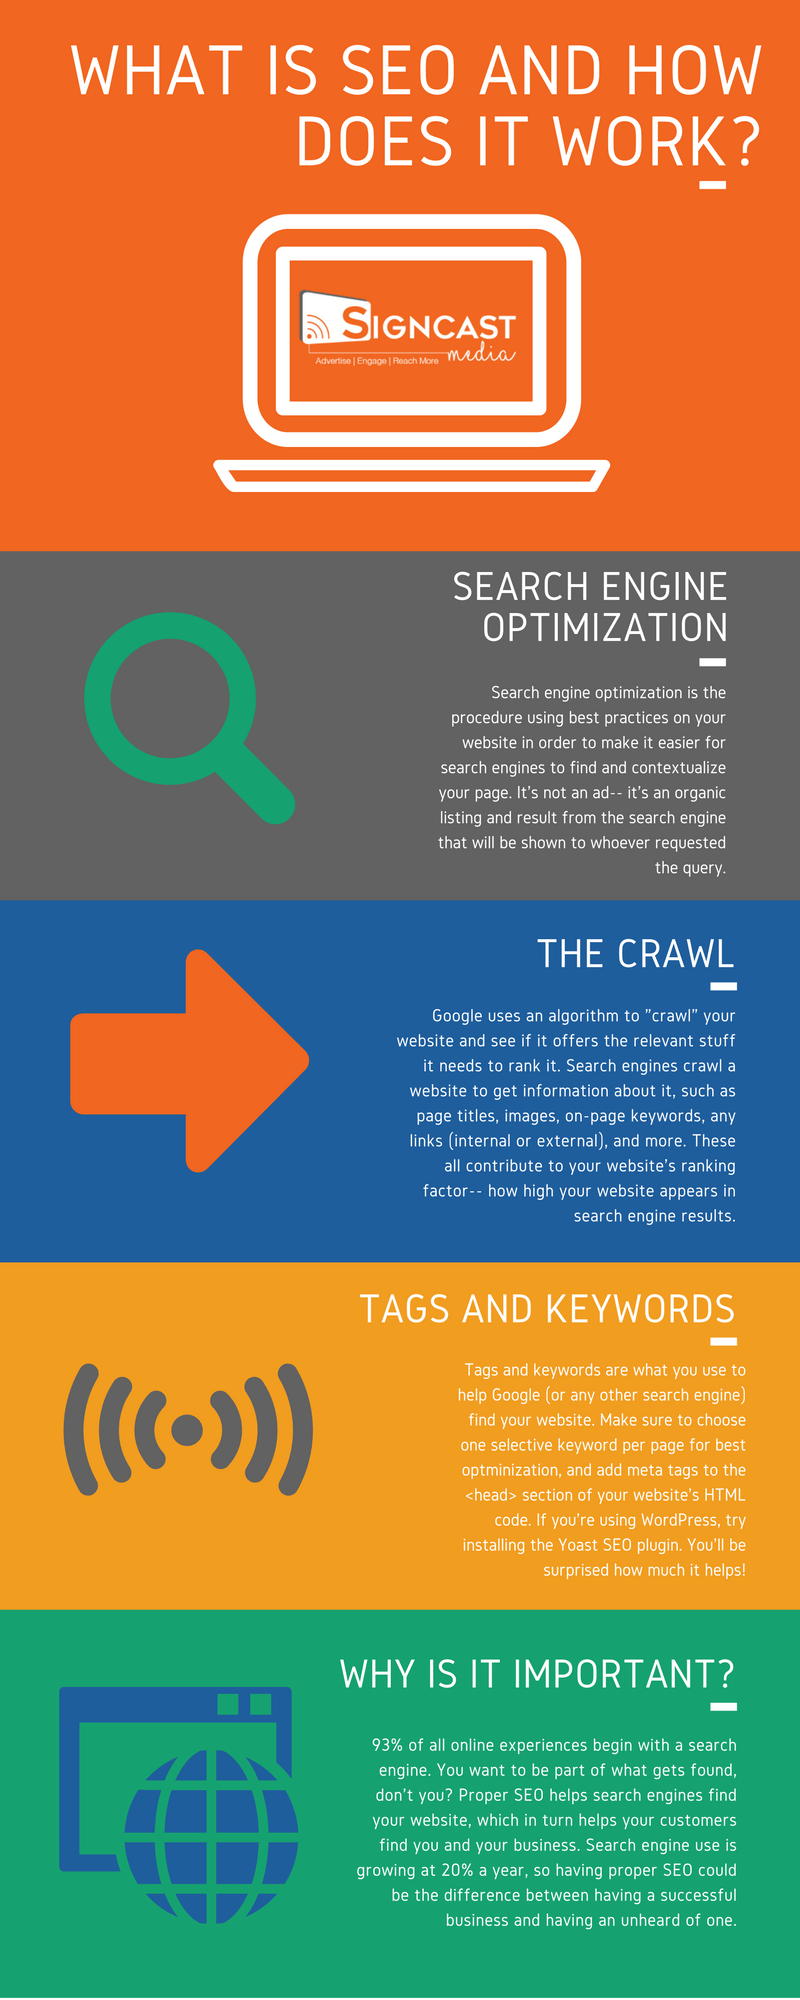 signcast media search engine optimization the crawl tags keywords meta data